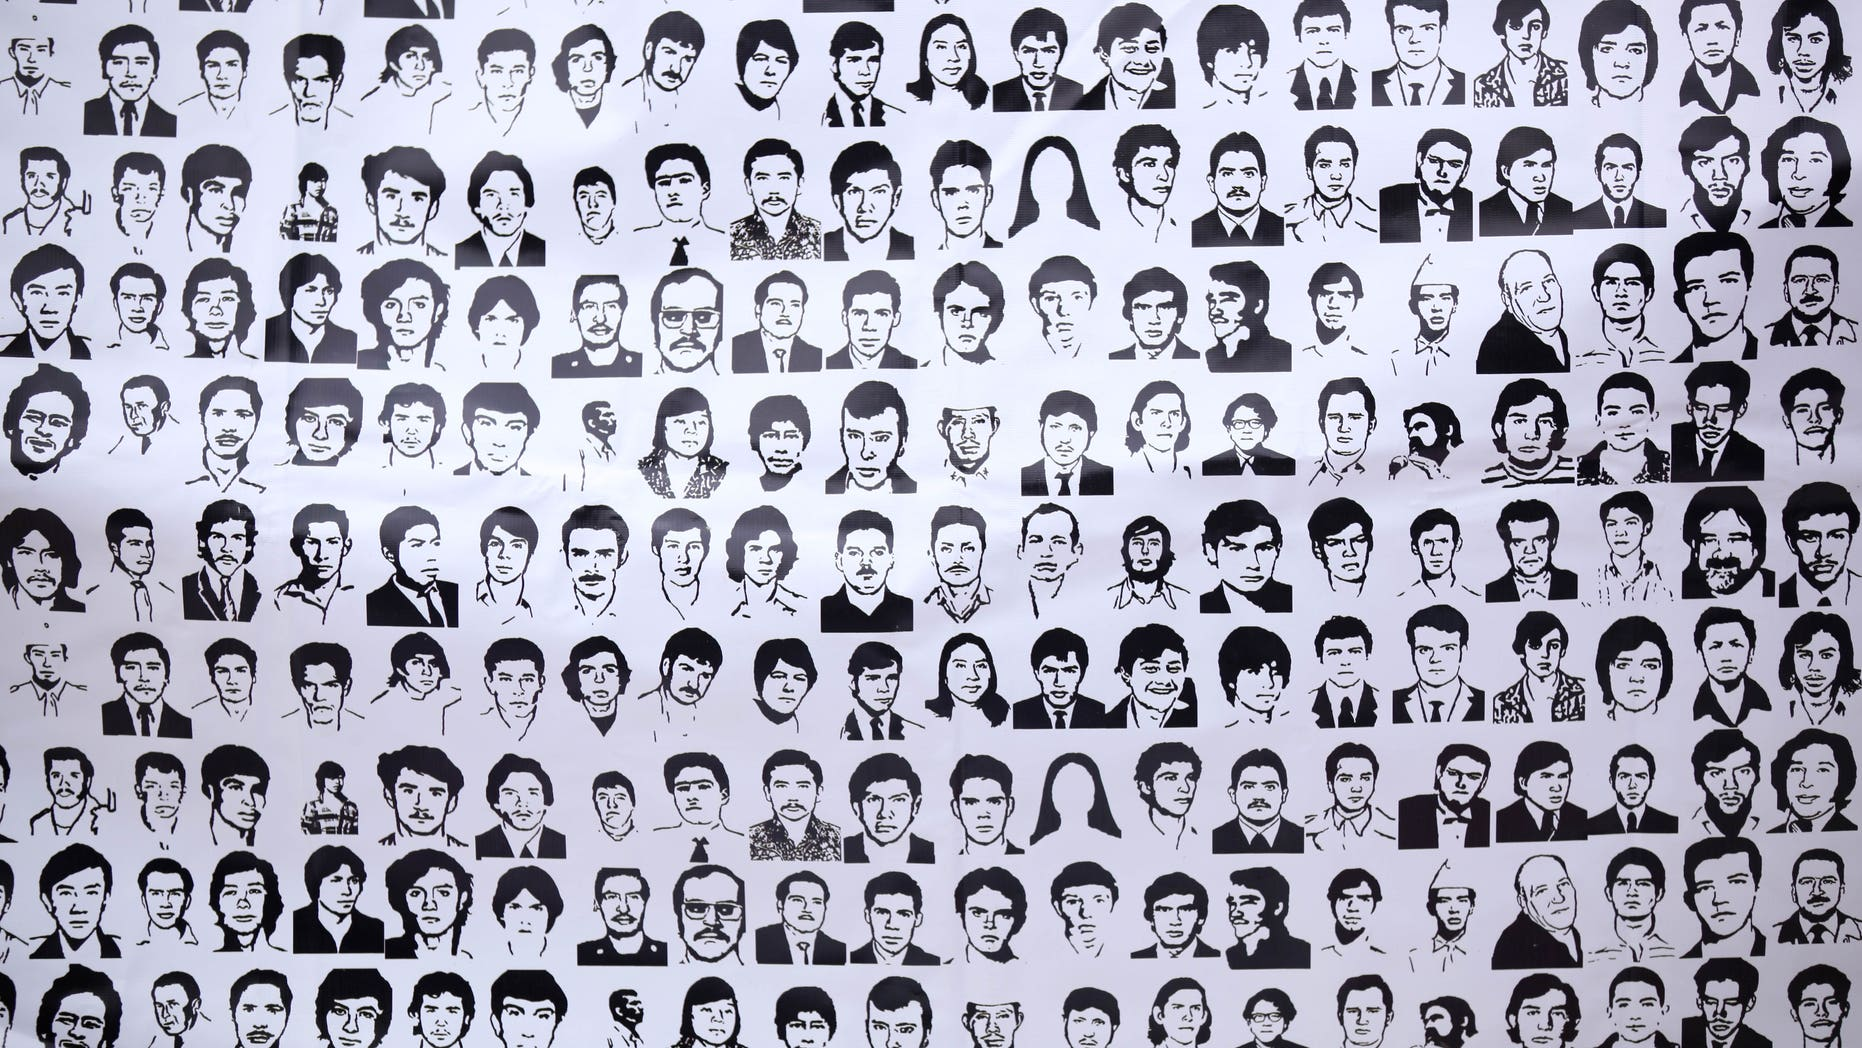 FILE - In this May 10, 2012, file photo, a banner shows ink drawings of missing people at the National March for Dignity on the day Mexicans celebrate el Dia de La Madre, or Mother's Day, in Mexico City. Propuesta Civica, or Civic Proposal, a civic organization released on its website on Thursday, Dec. 20, 2012, a database, allegedly collected by the federal Attorney General's Office, it says contains official information on more than 20,000 people who have disappeared in Mexico over the past six years. (AP Photo/Alexandre Meneghini, file)